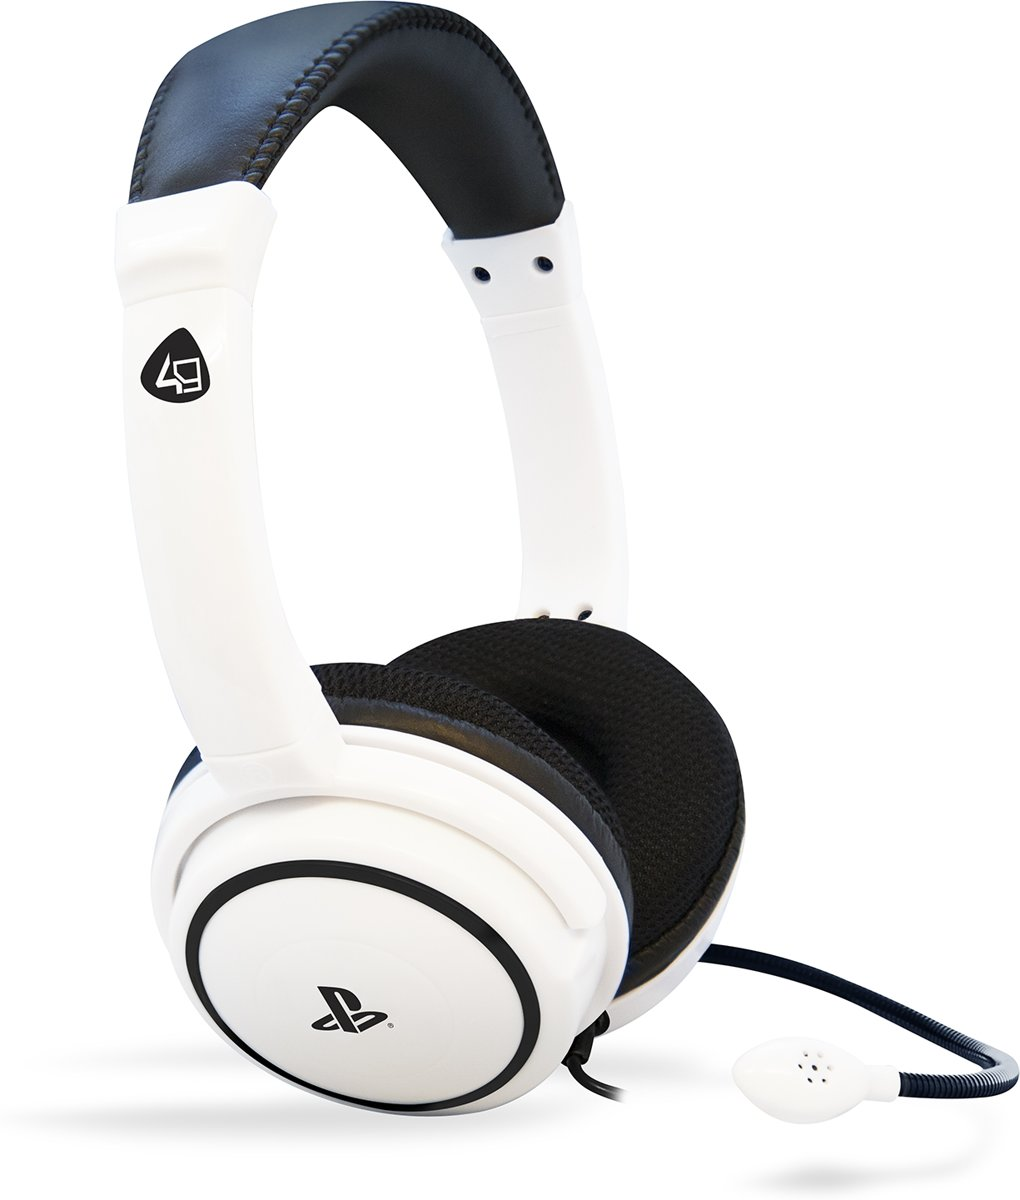 4Gamers PRO4-40 - Gaming Headset - Wit - PS4